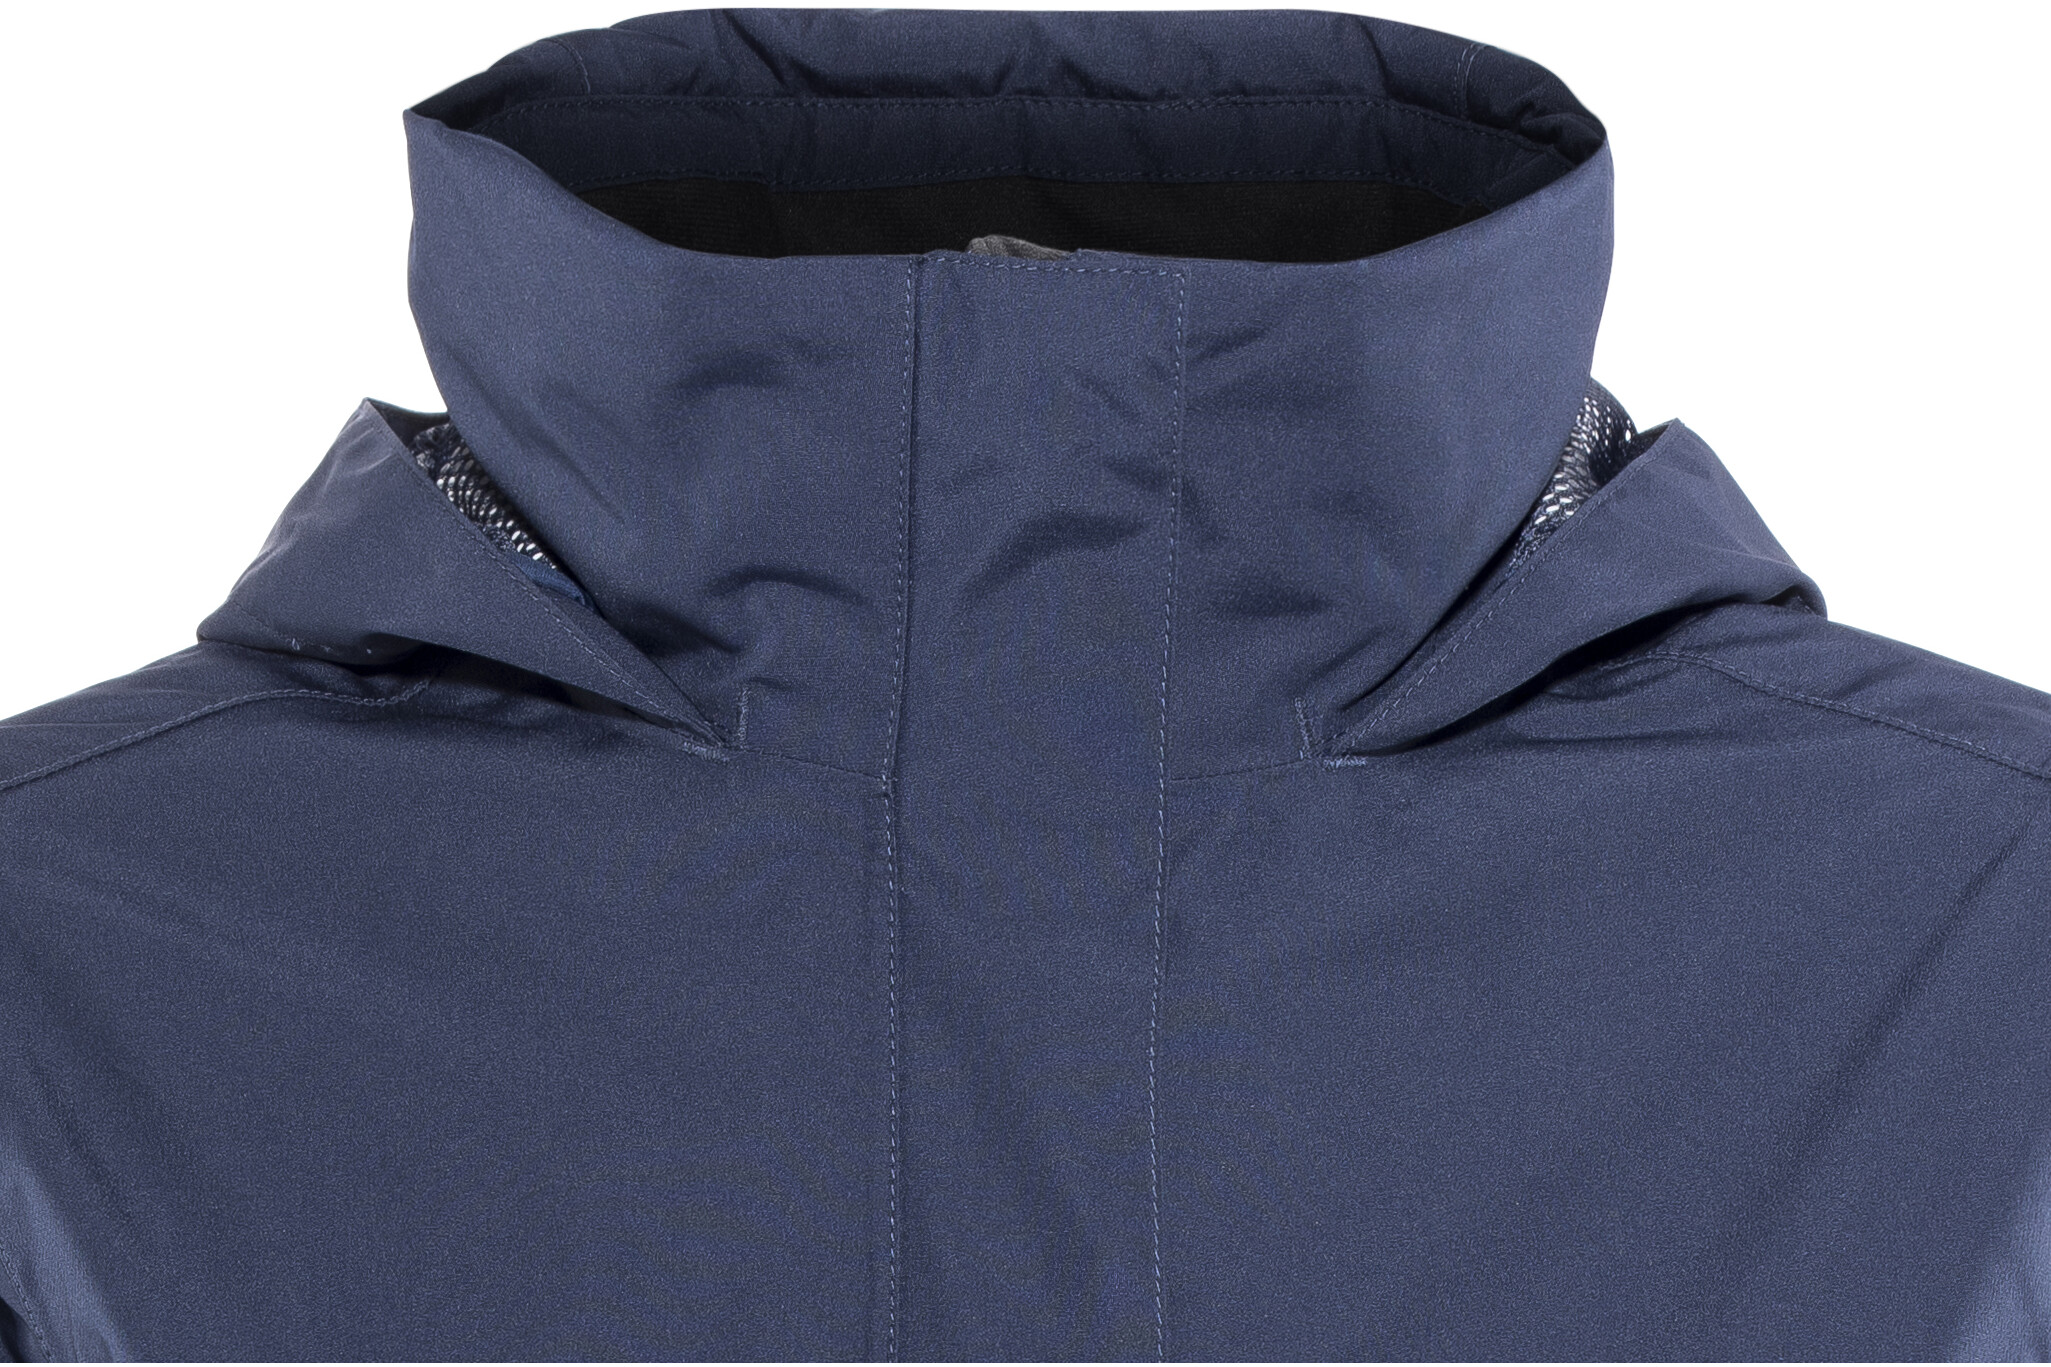 83eceb64 Helly Hansen Aden Jakke Damer, evening blue | Find outdoortøj, sko ...